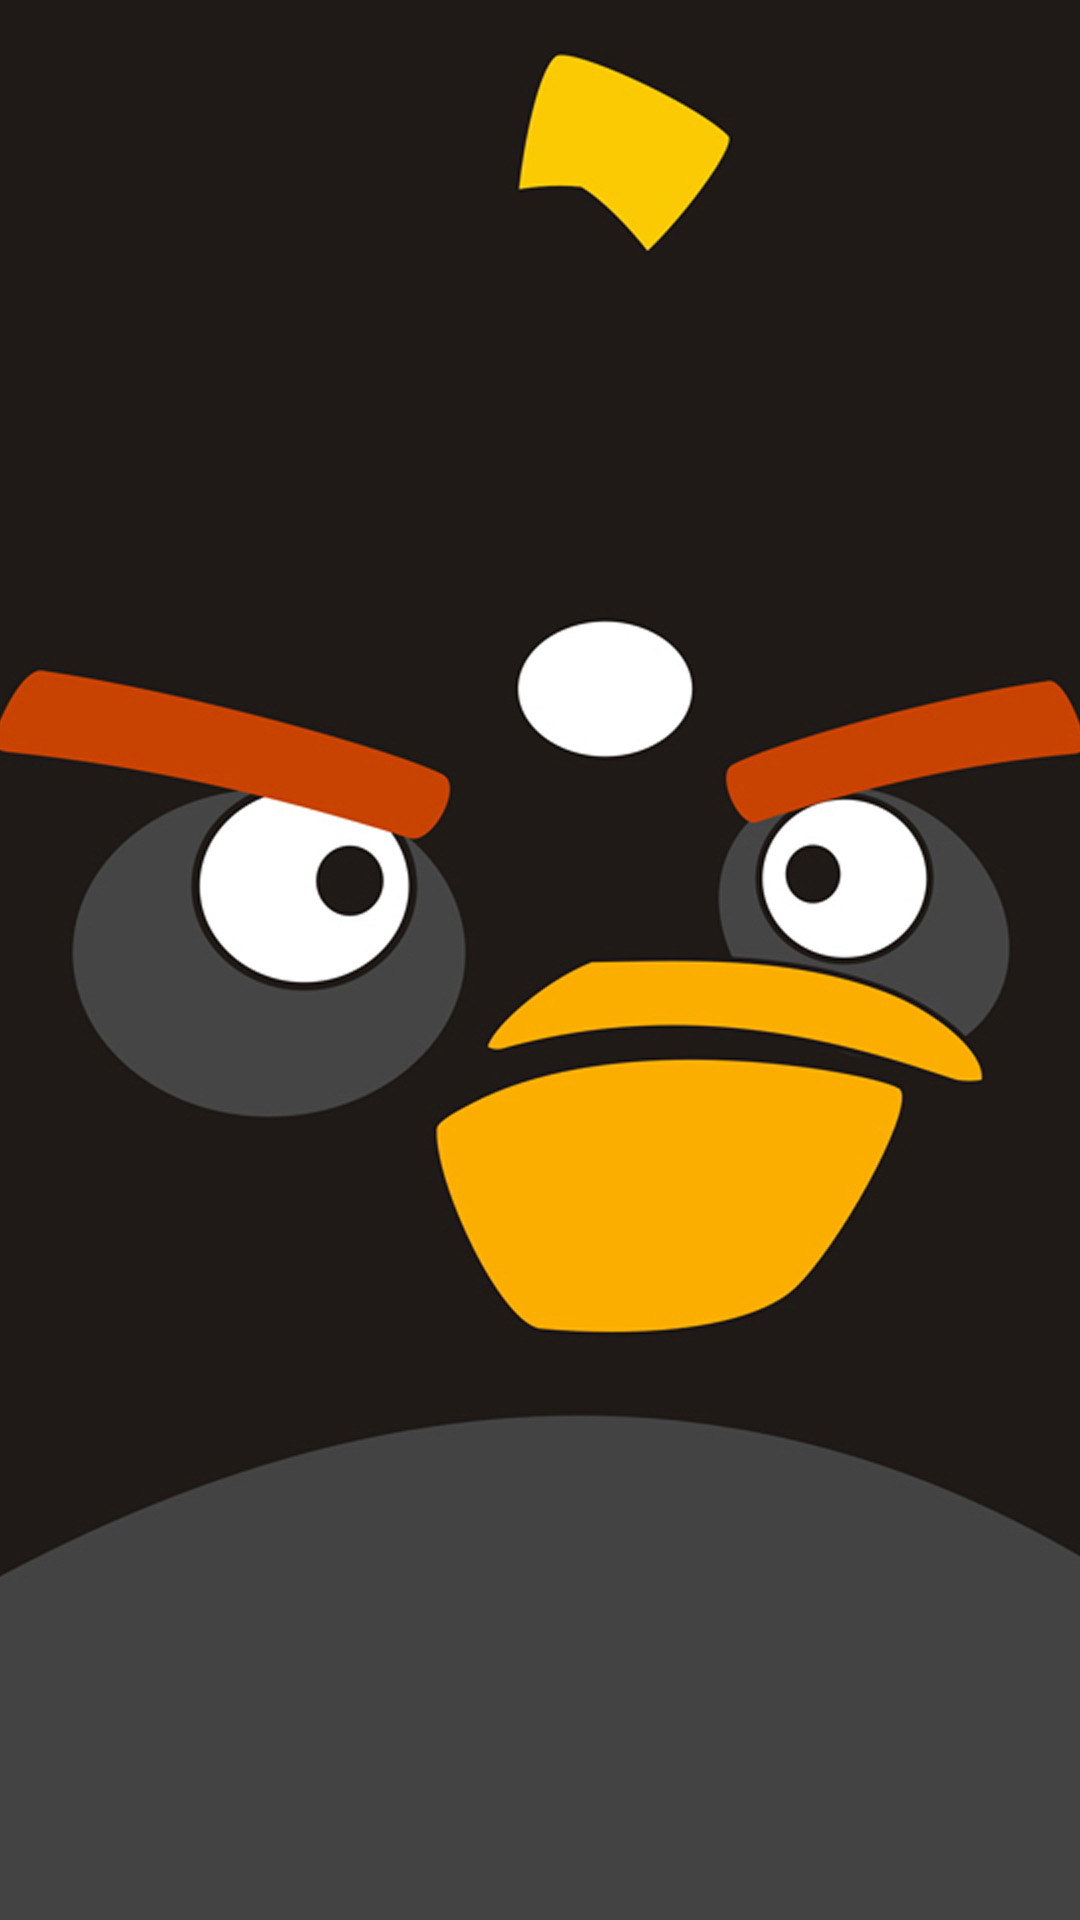 iphone 6 plus angry birds bomb games wallpaper